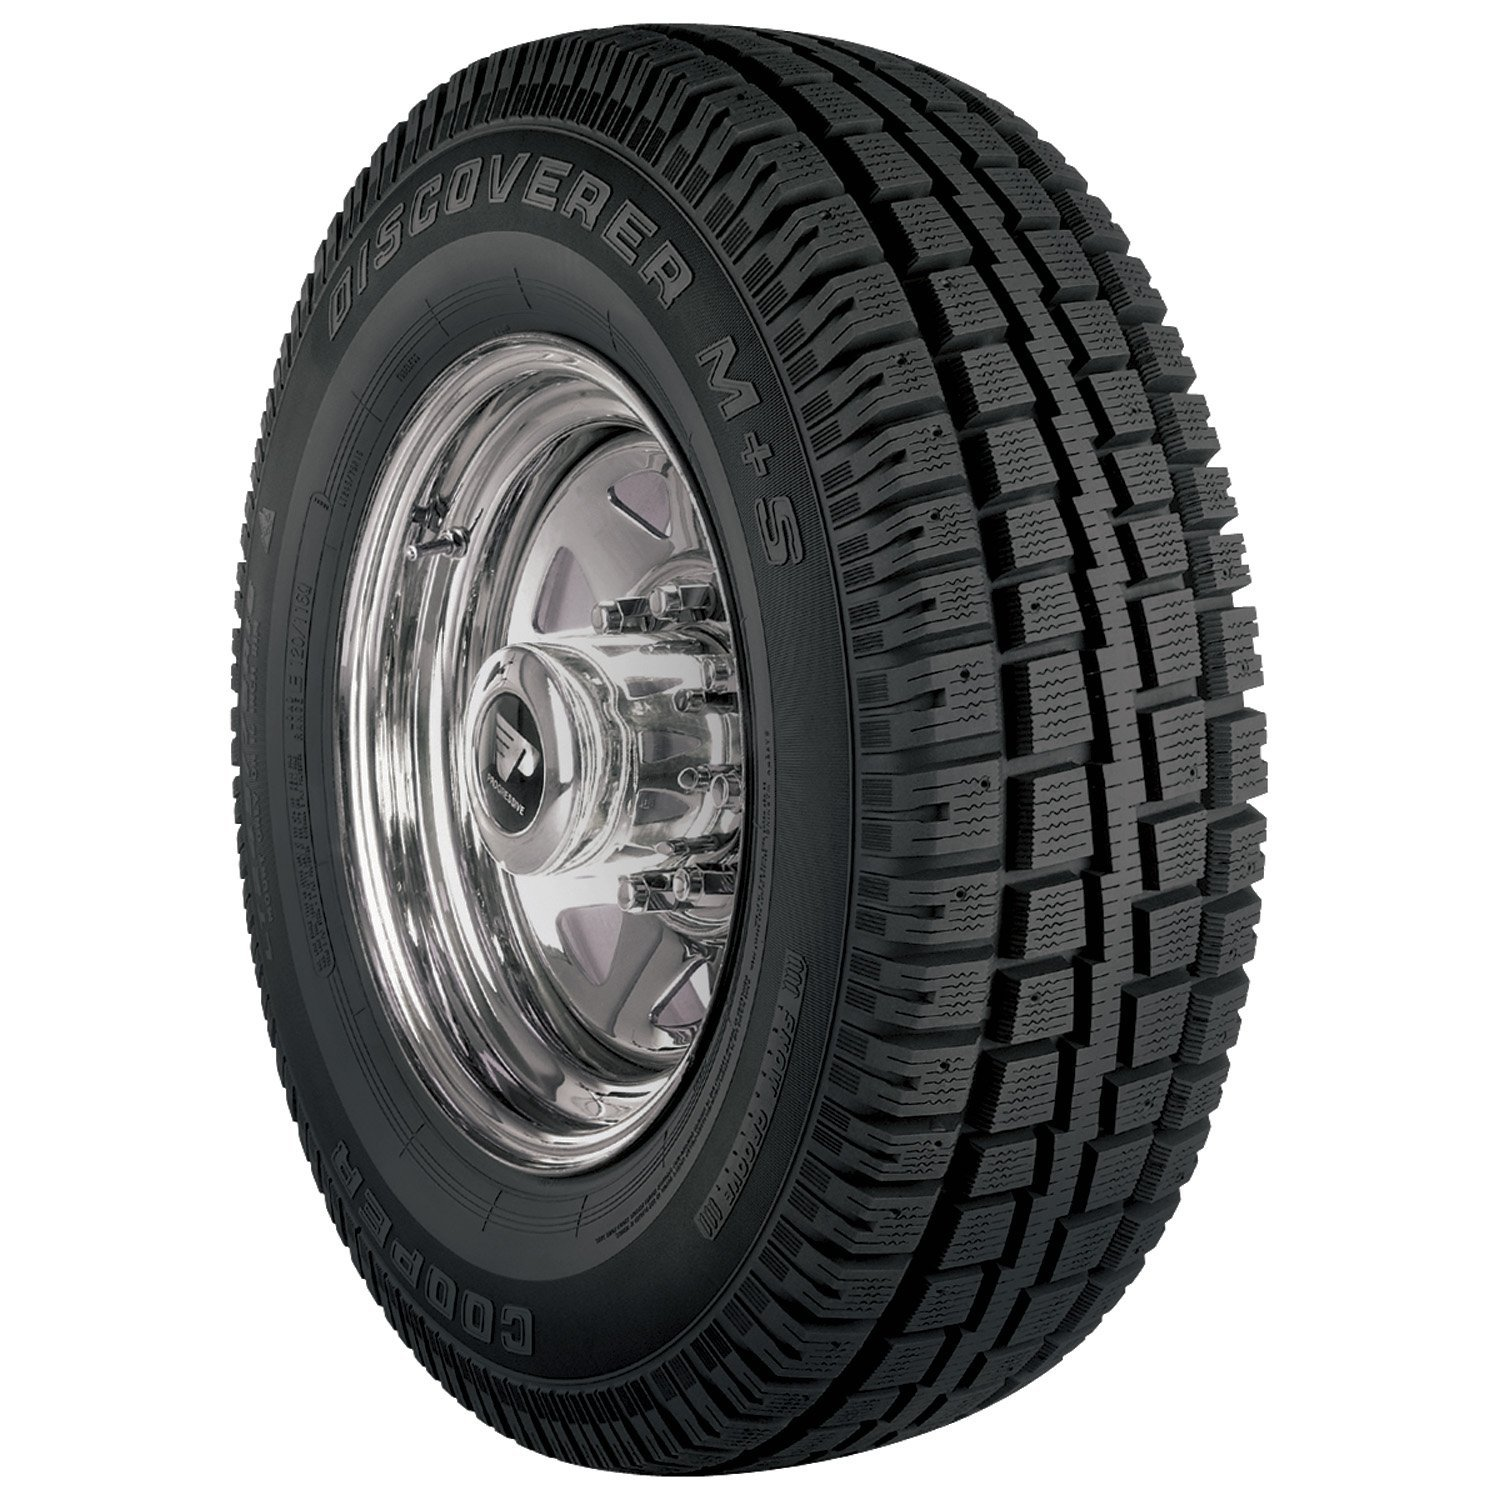 Gomme 4x4 Suv Cooper Tyres 255/50 R19 107V DISCOVERER WINTER XL M+S Invernale